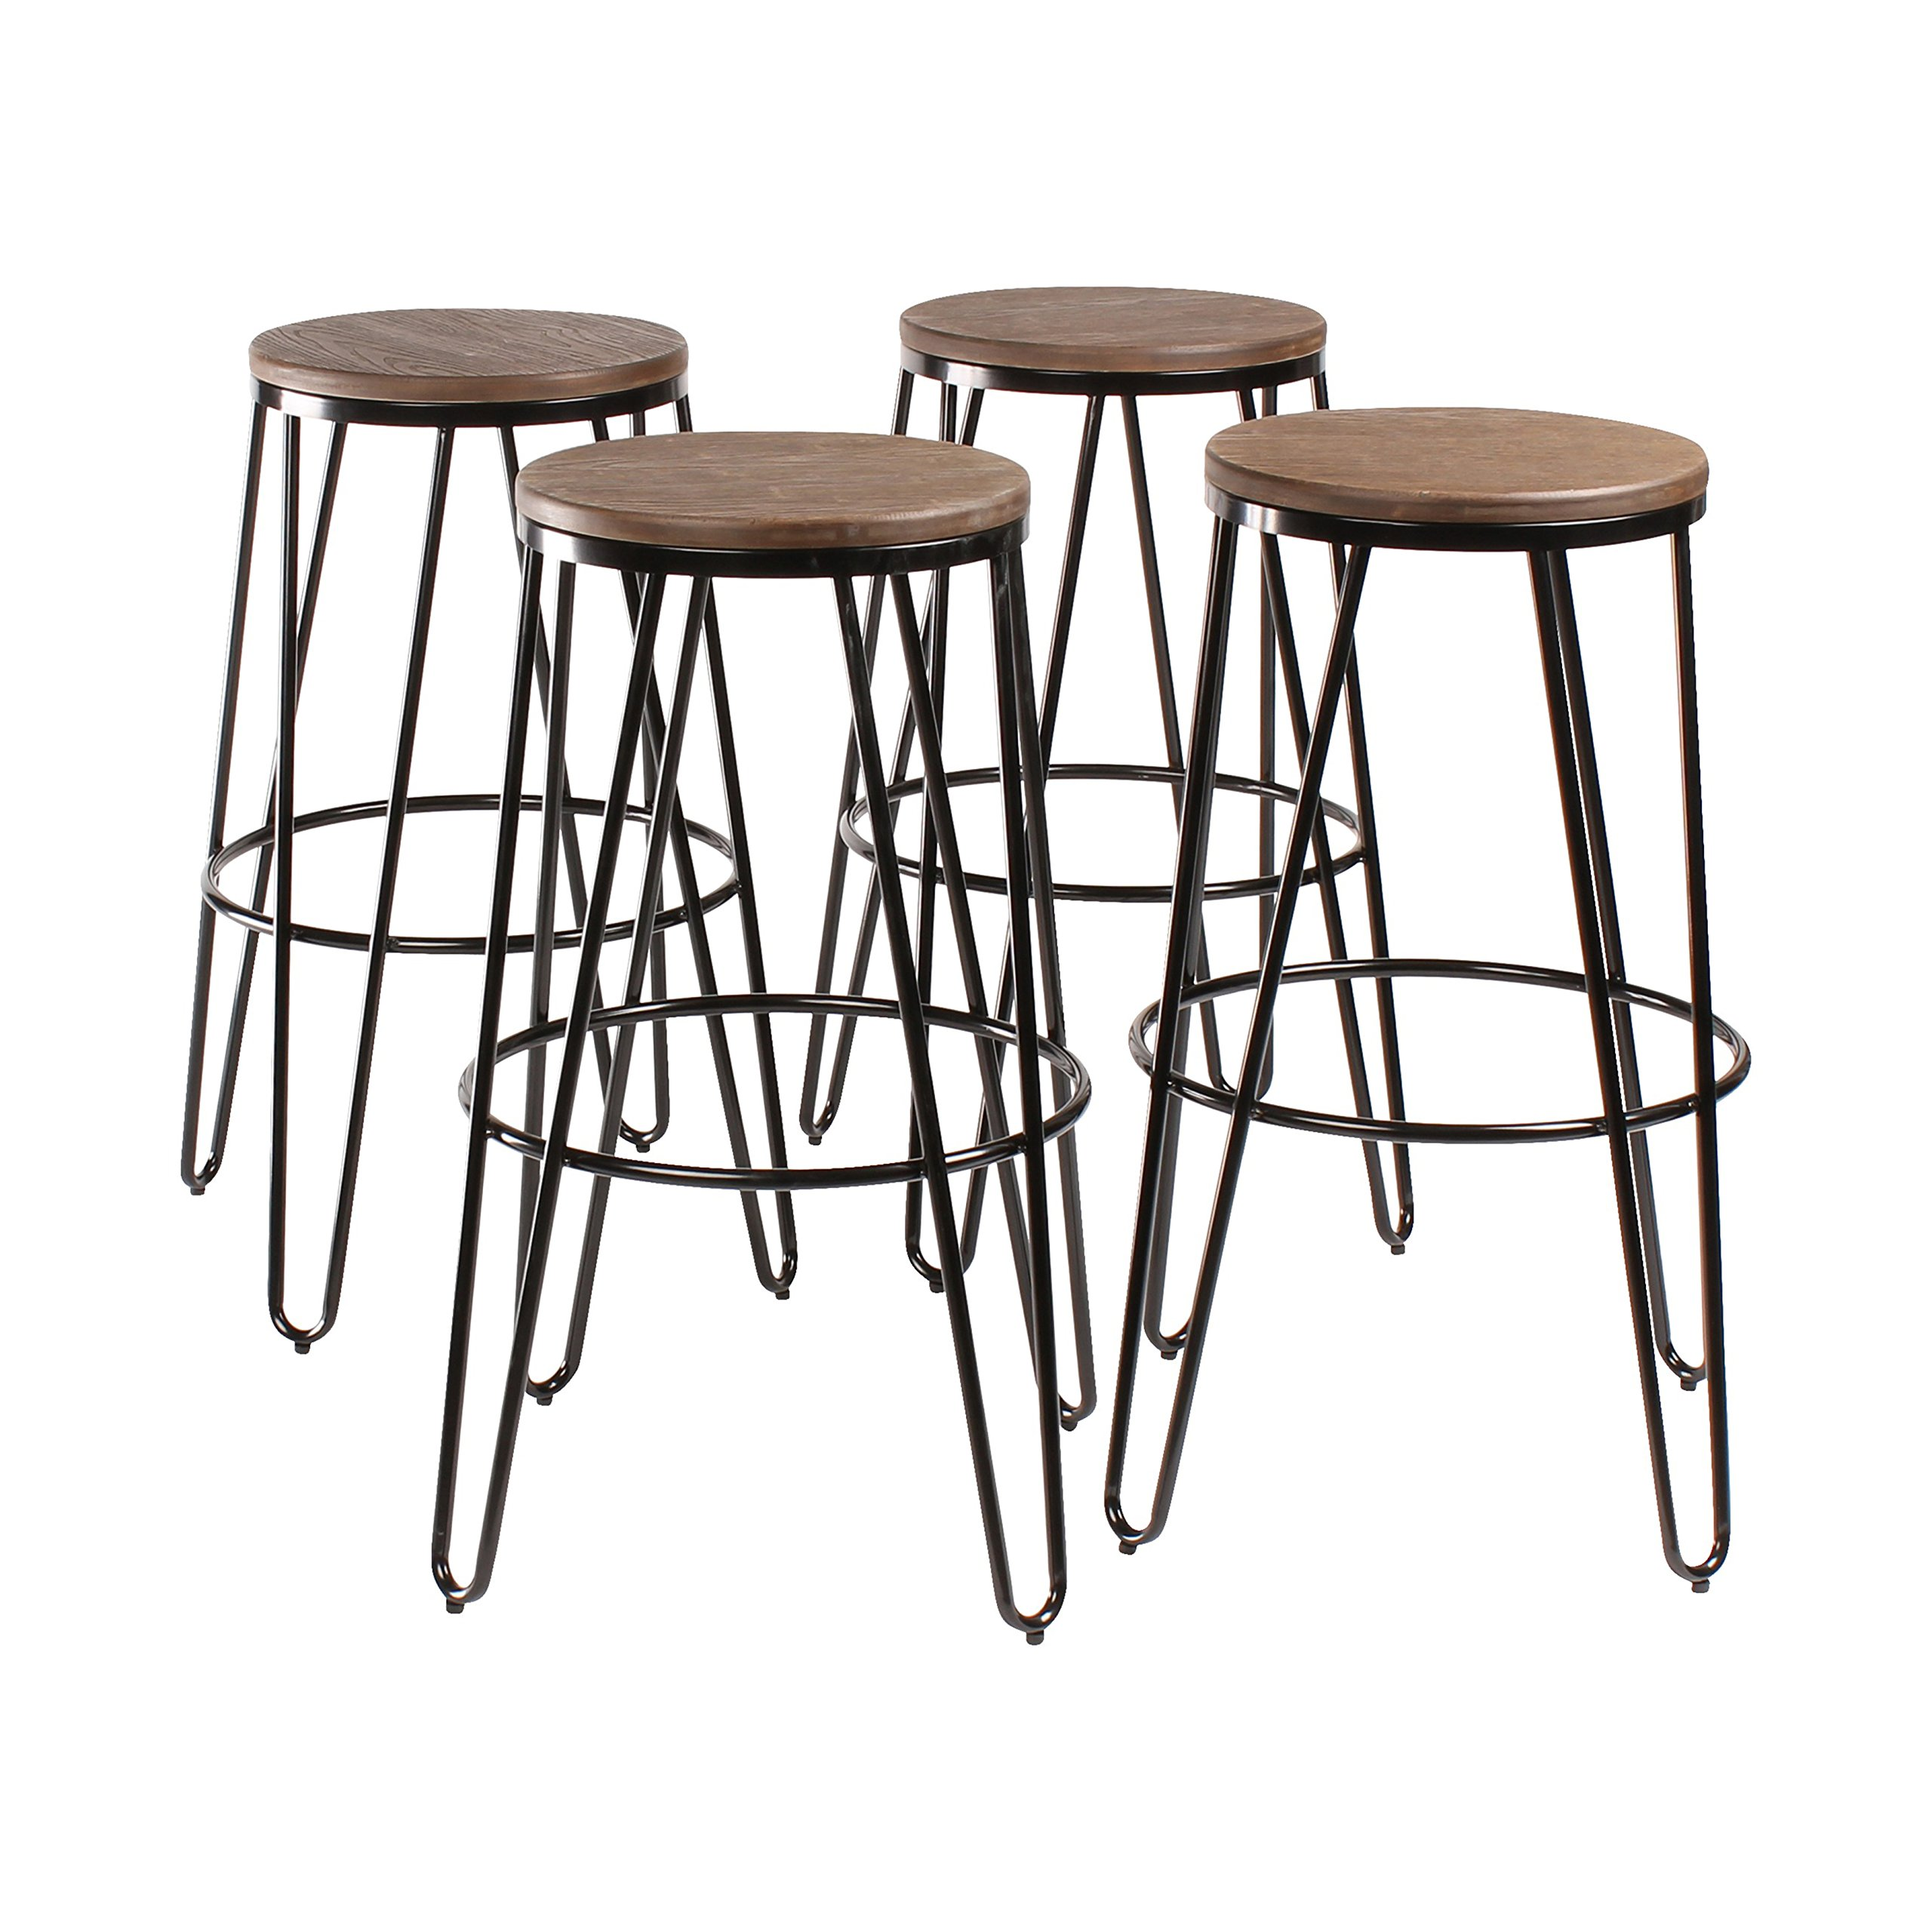 Kate and Laurel Tully Backless Modern Wood and Metal 30'' Bar Stools, Set of 4, Black with Wood Seat by Kate and Laurel